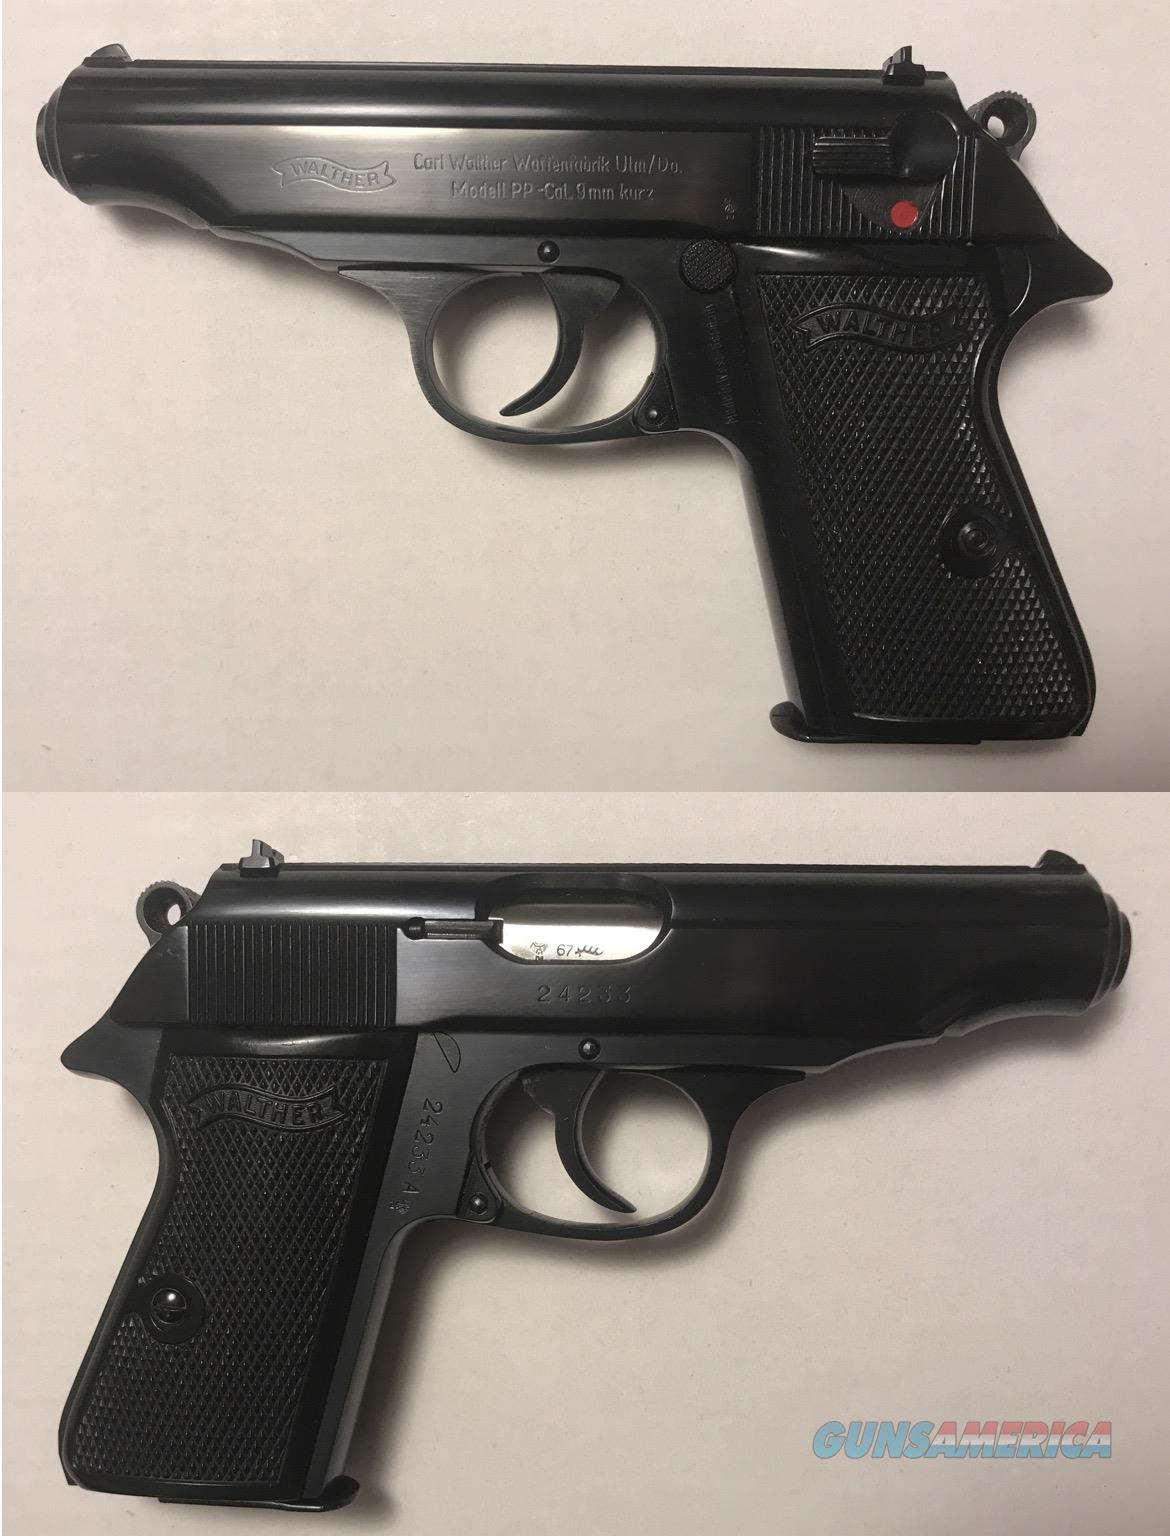 German Walther PP 9mmK .380acp Mfg. 1967 C&R  Guns > Pistols > Walther Pistols > Post WWII > PPK Series